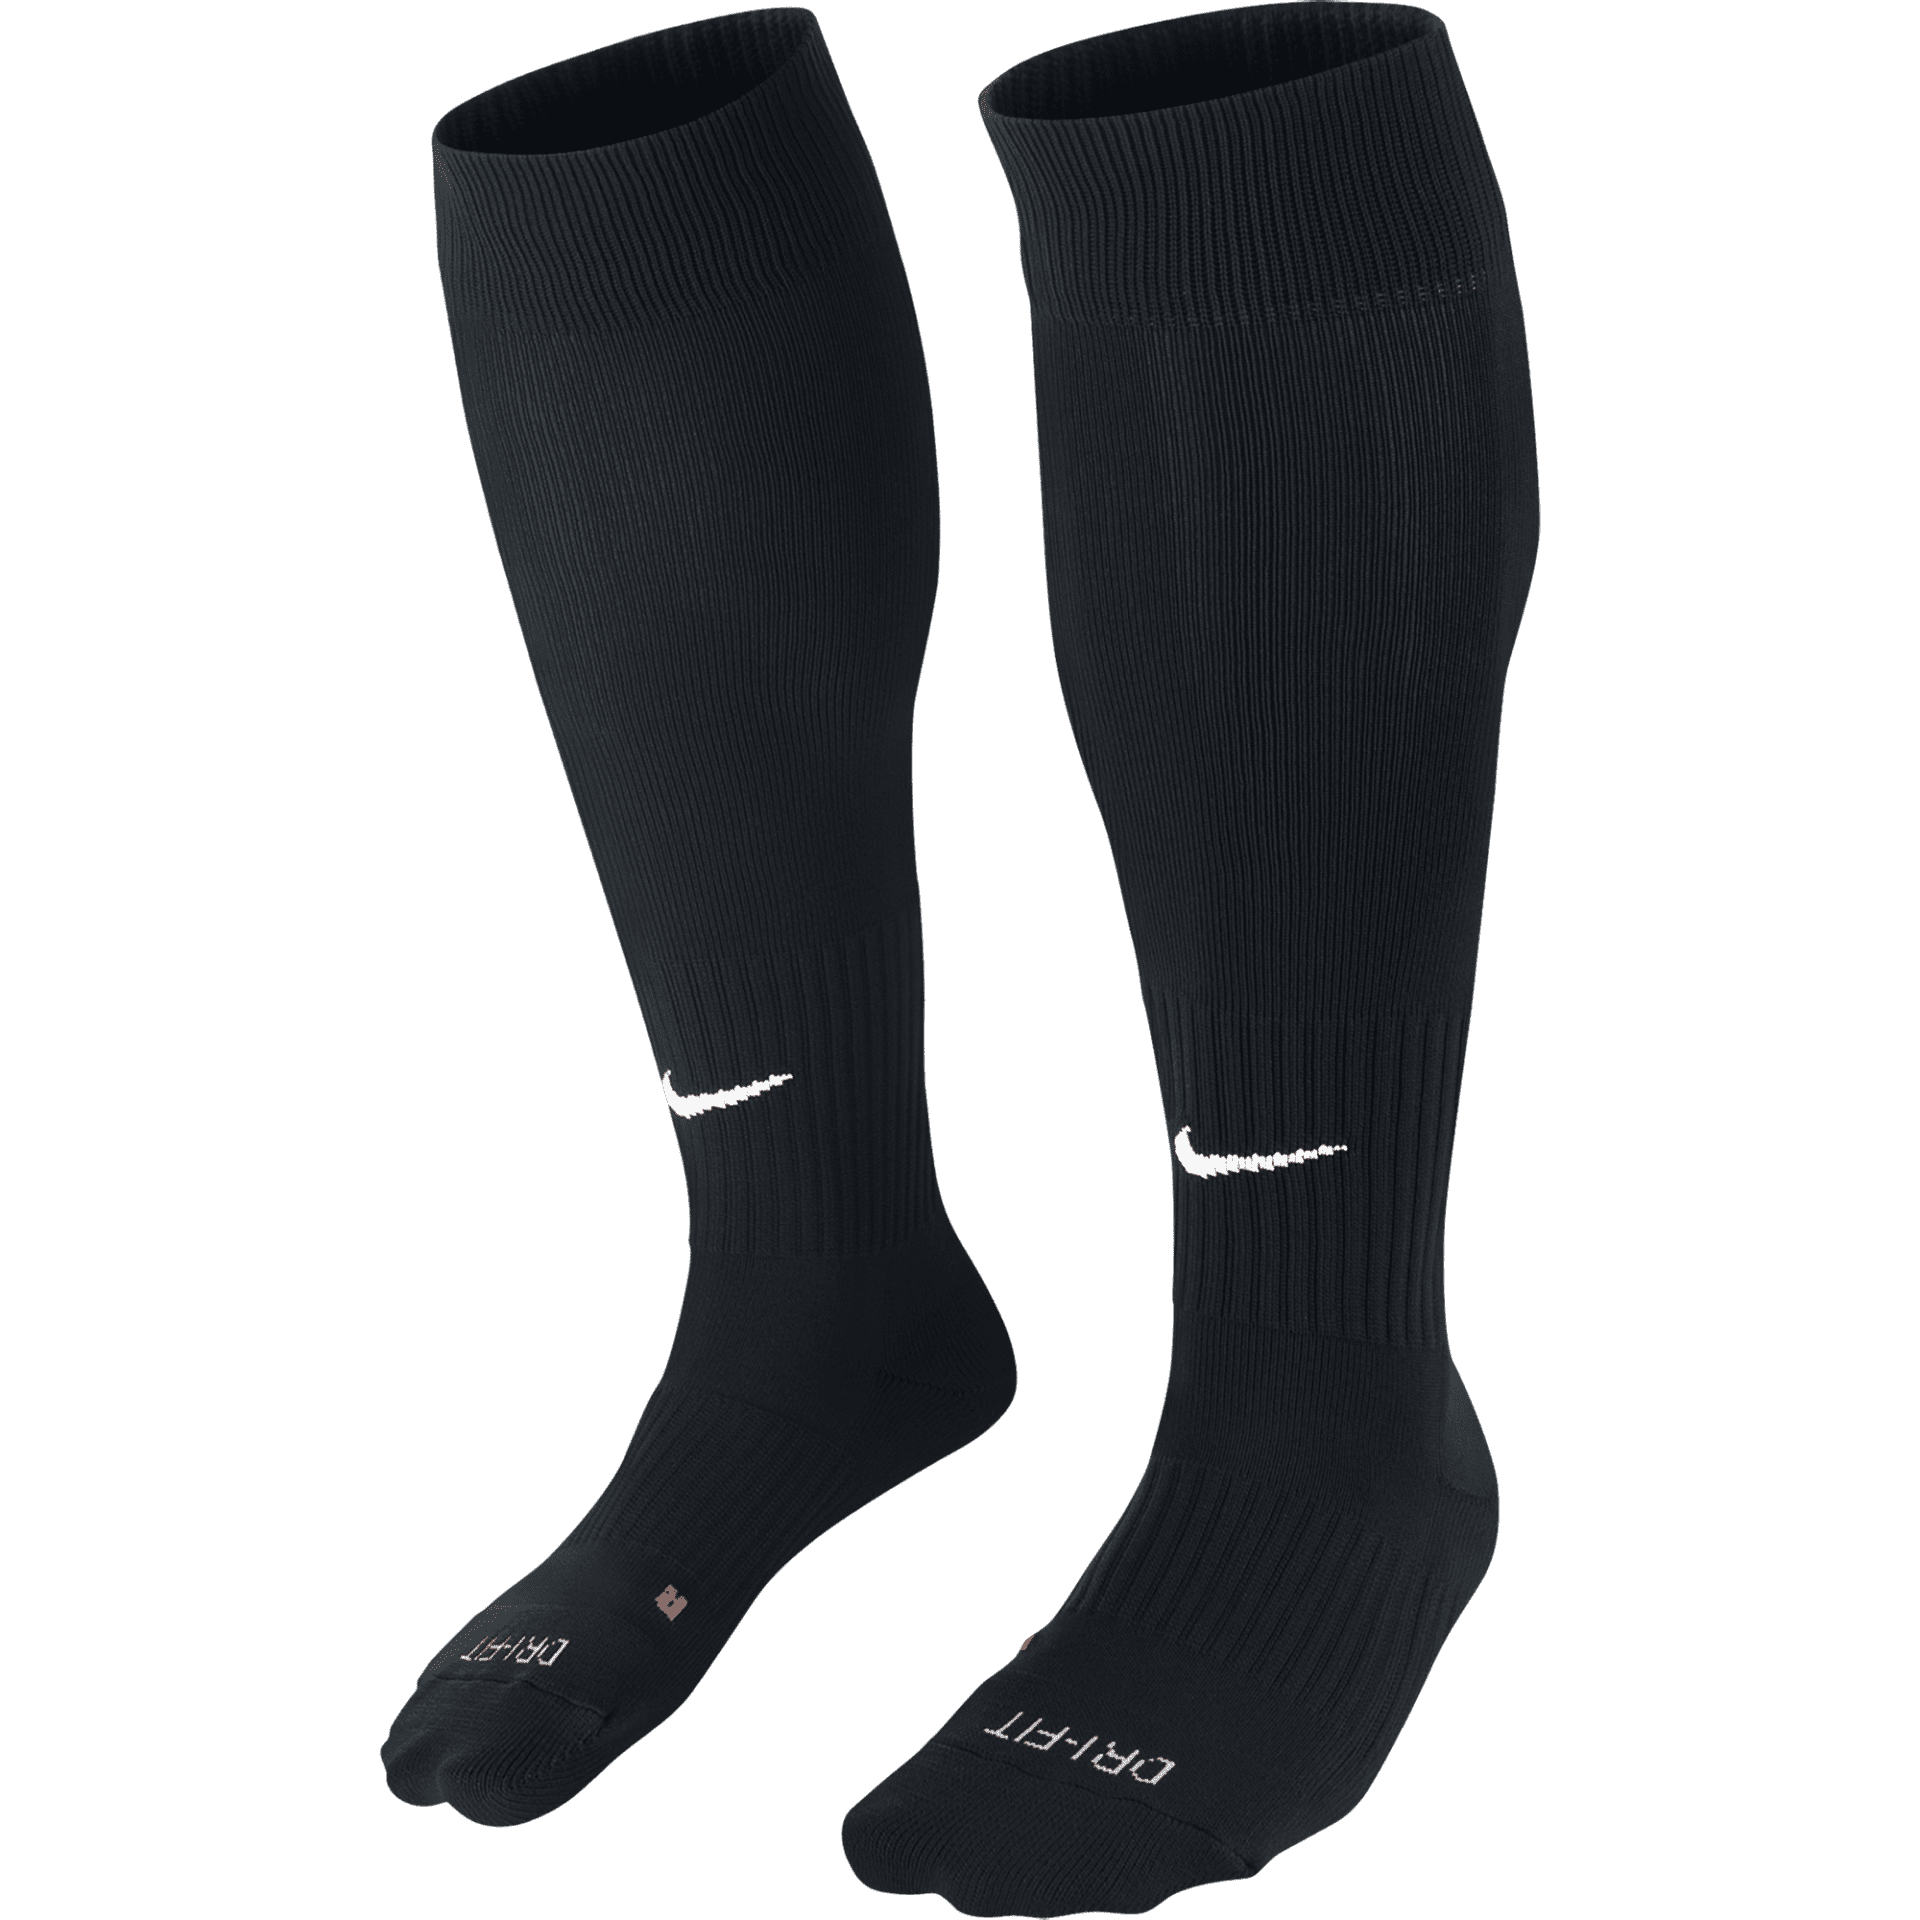 fivemiletown socks black  34439 p